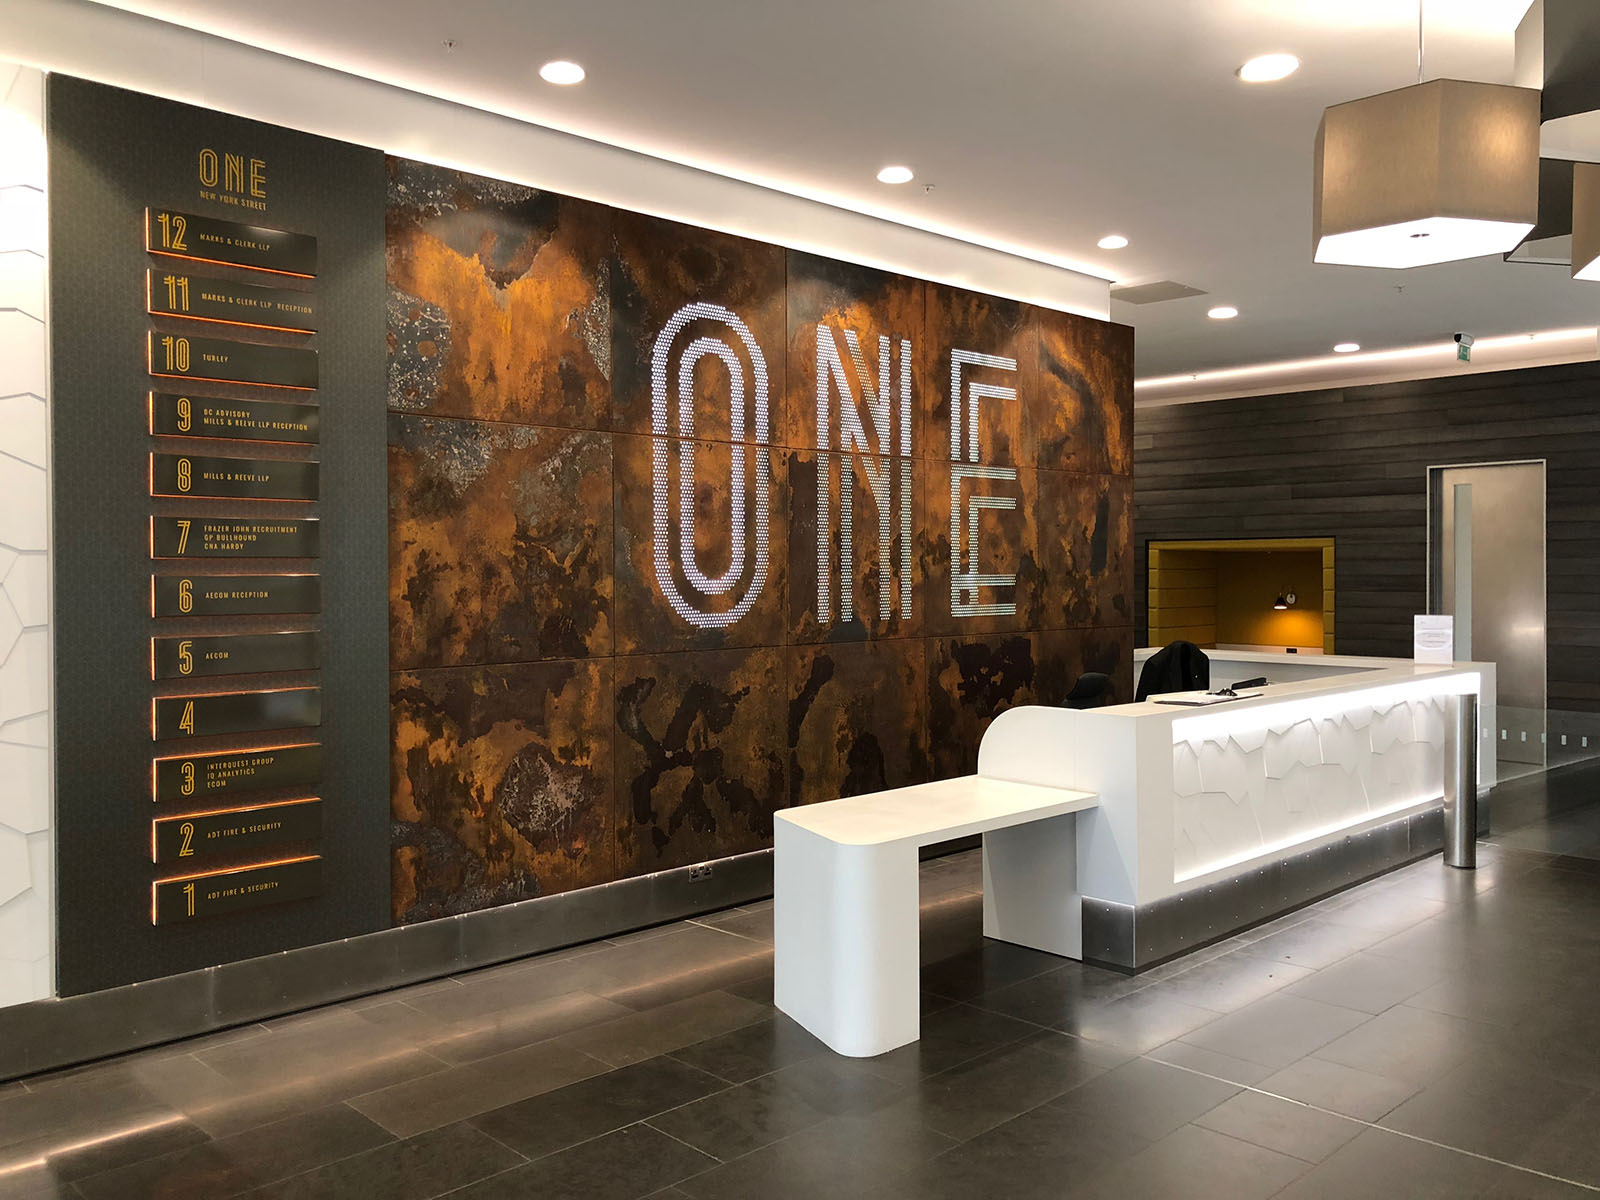 Feature branded light box sign and metal patina in reception